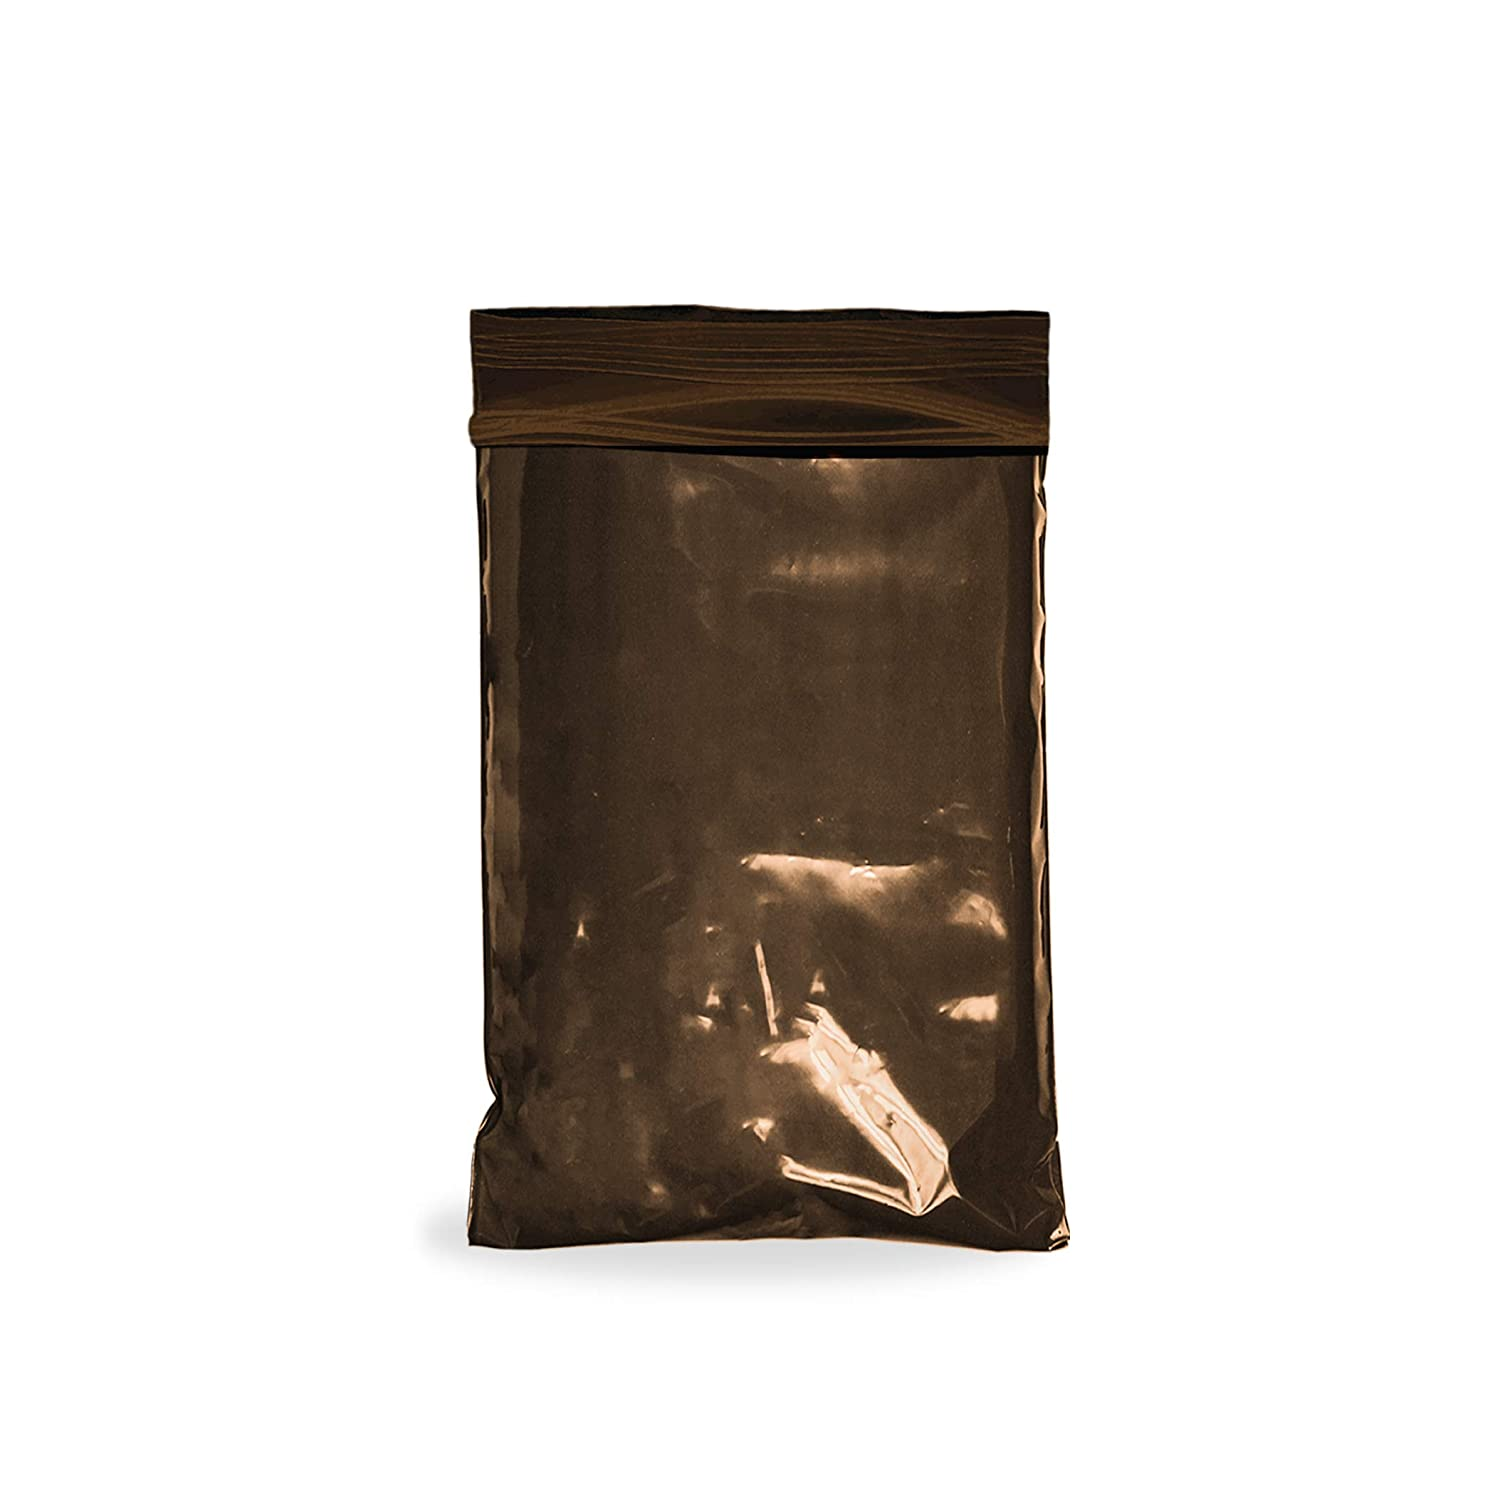 APQ Pack of 100 Polypropylene Zipper Locking Bags 6 x 8. Thickness 3 mil. Brown Seal Top Bags 6x8. High Clarity Food Storage Bags for Industrial, Food Service.